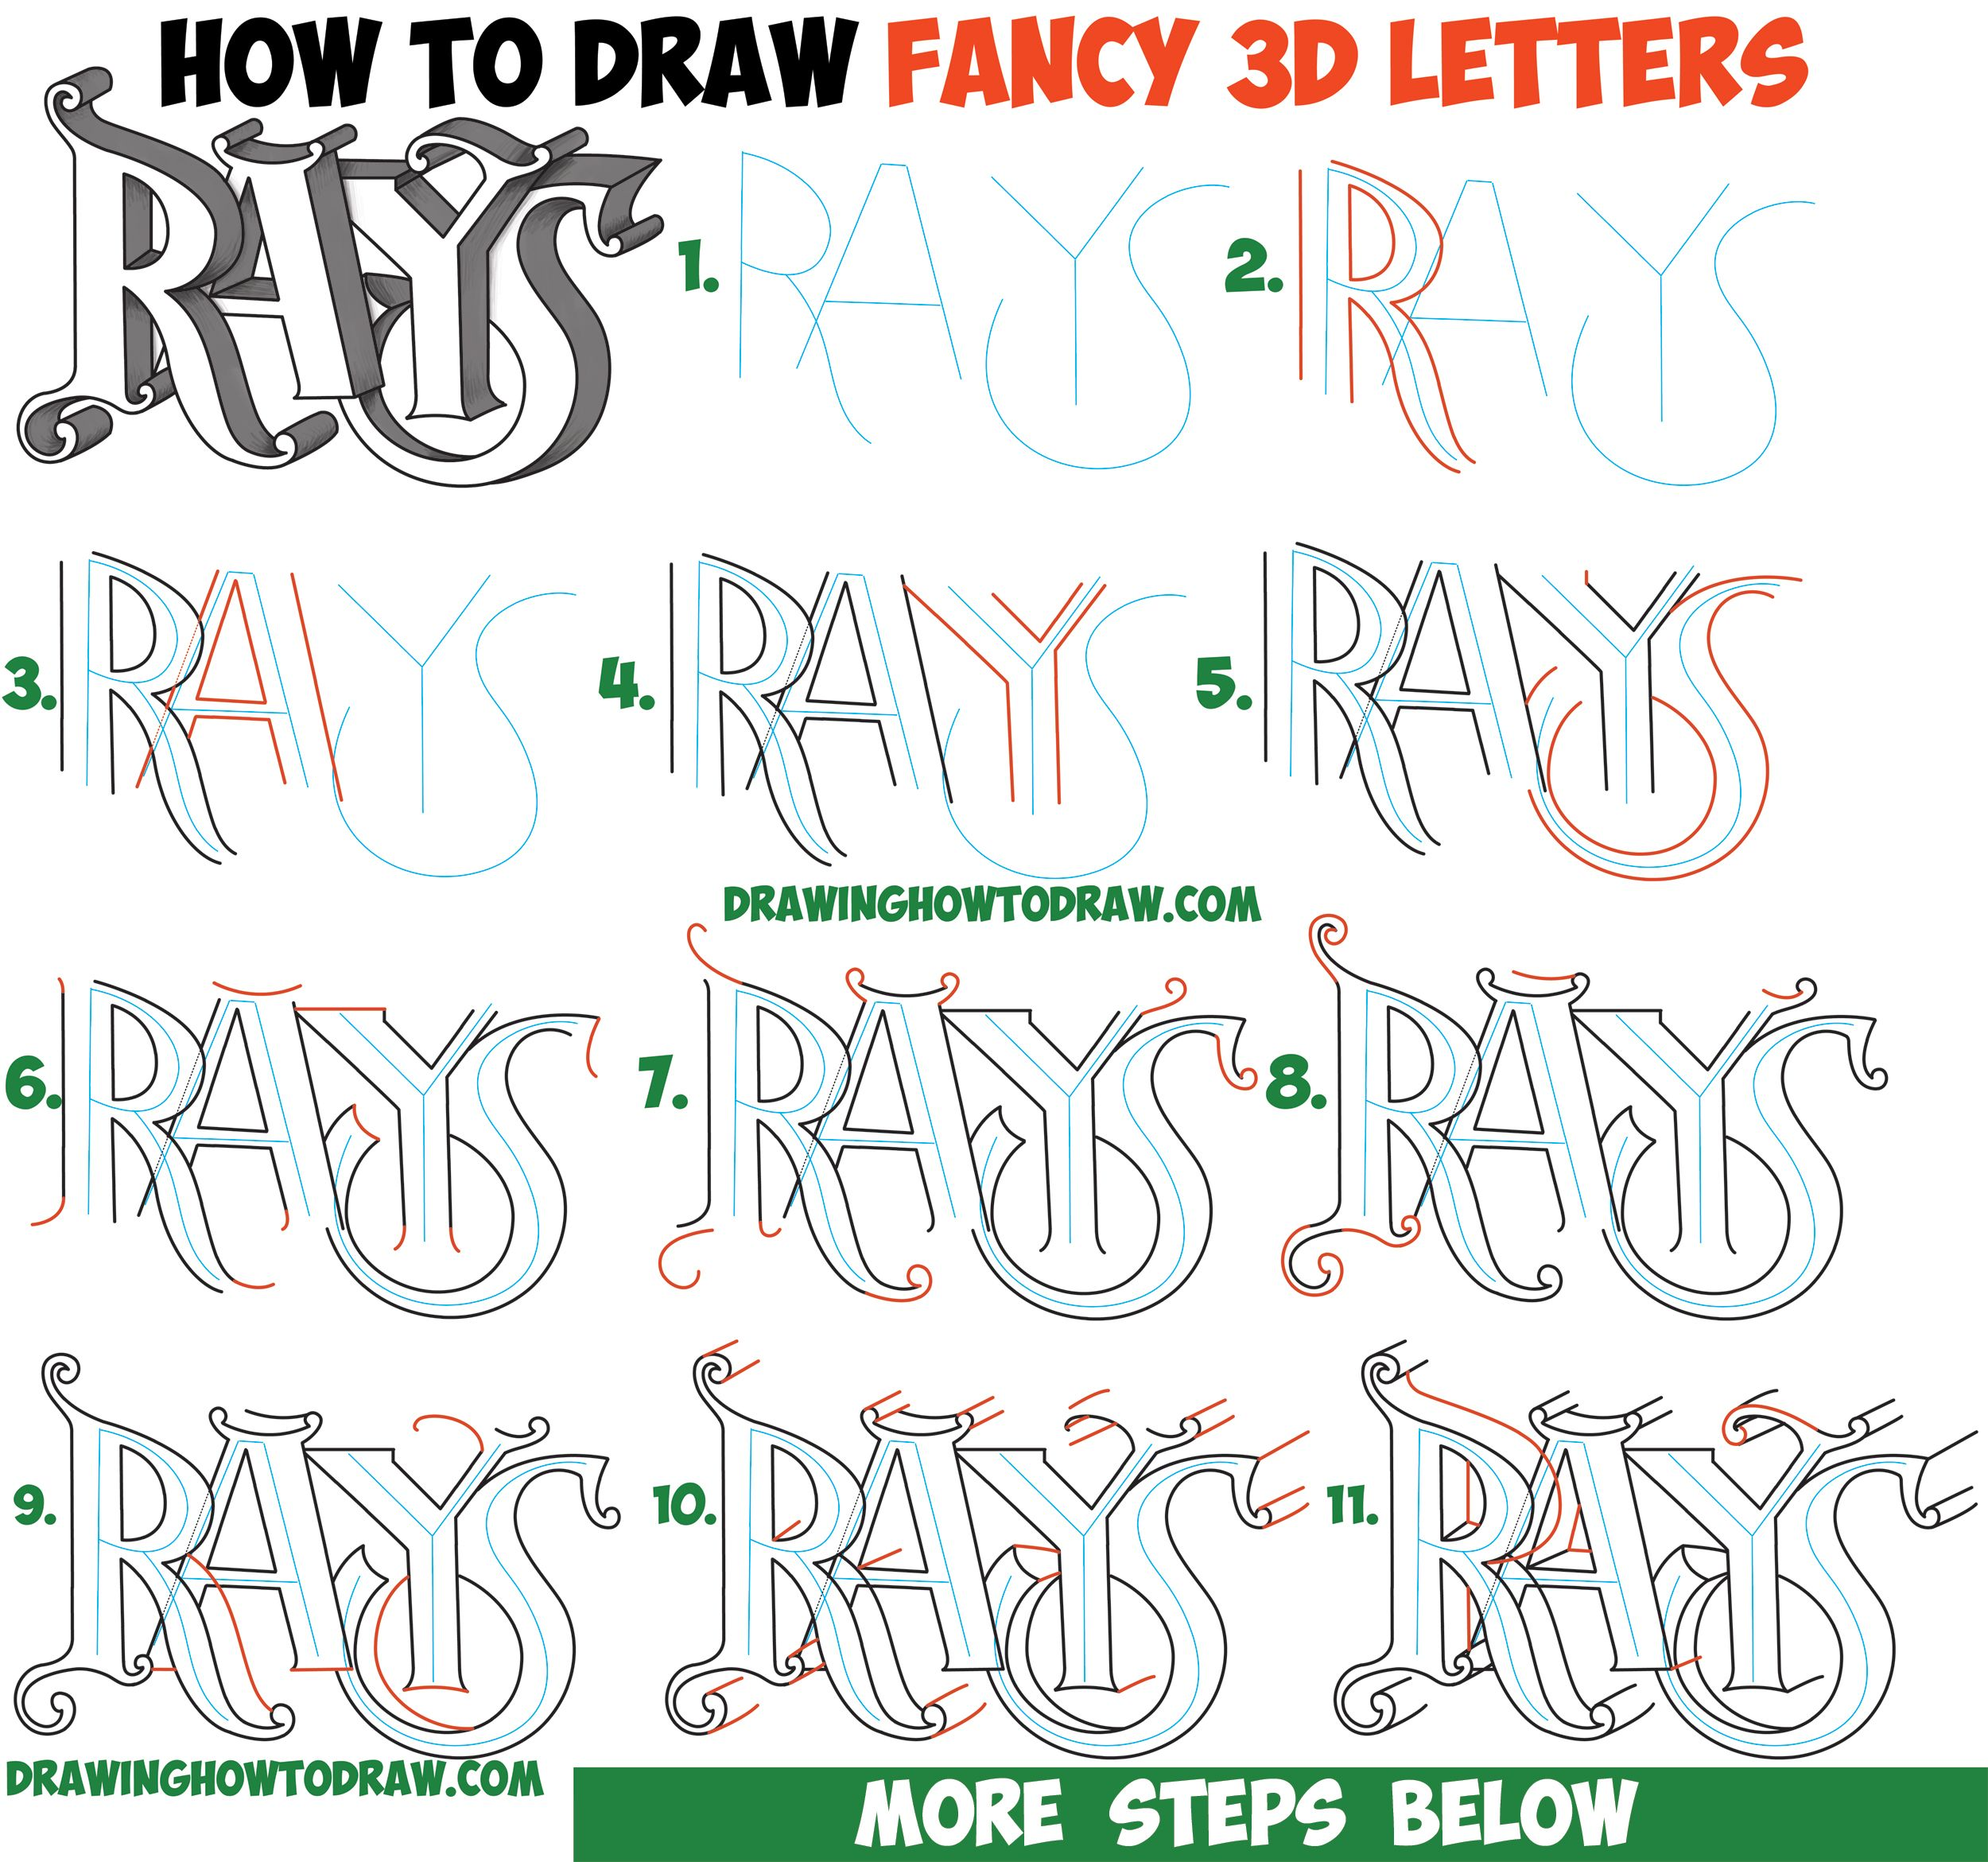 How To Draw 3d Fancy Curvy Letters Easy Step By Step